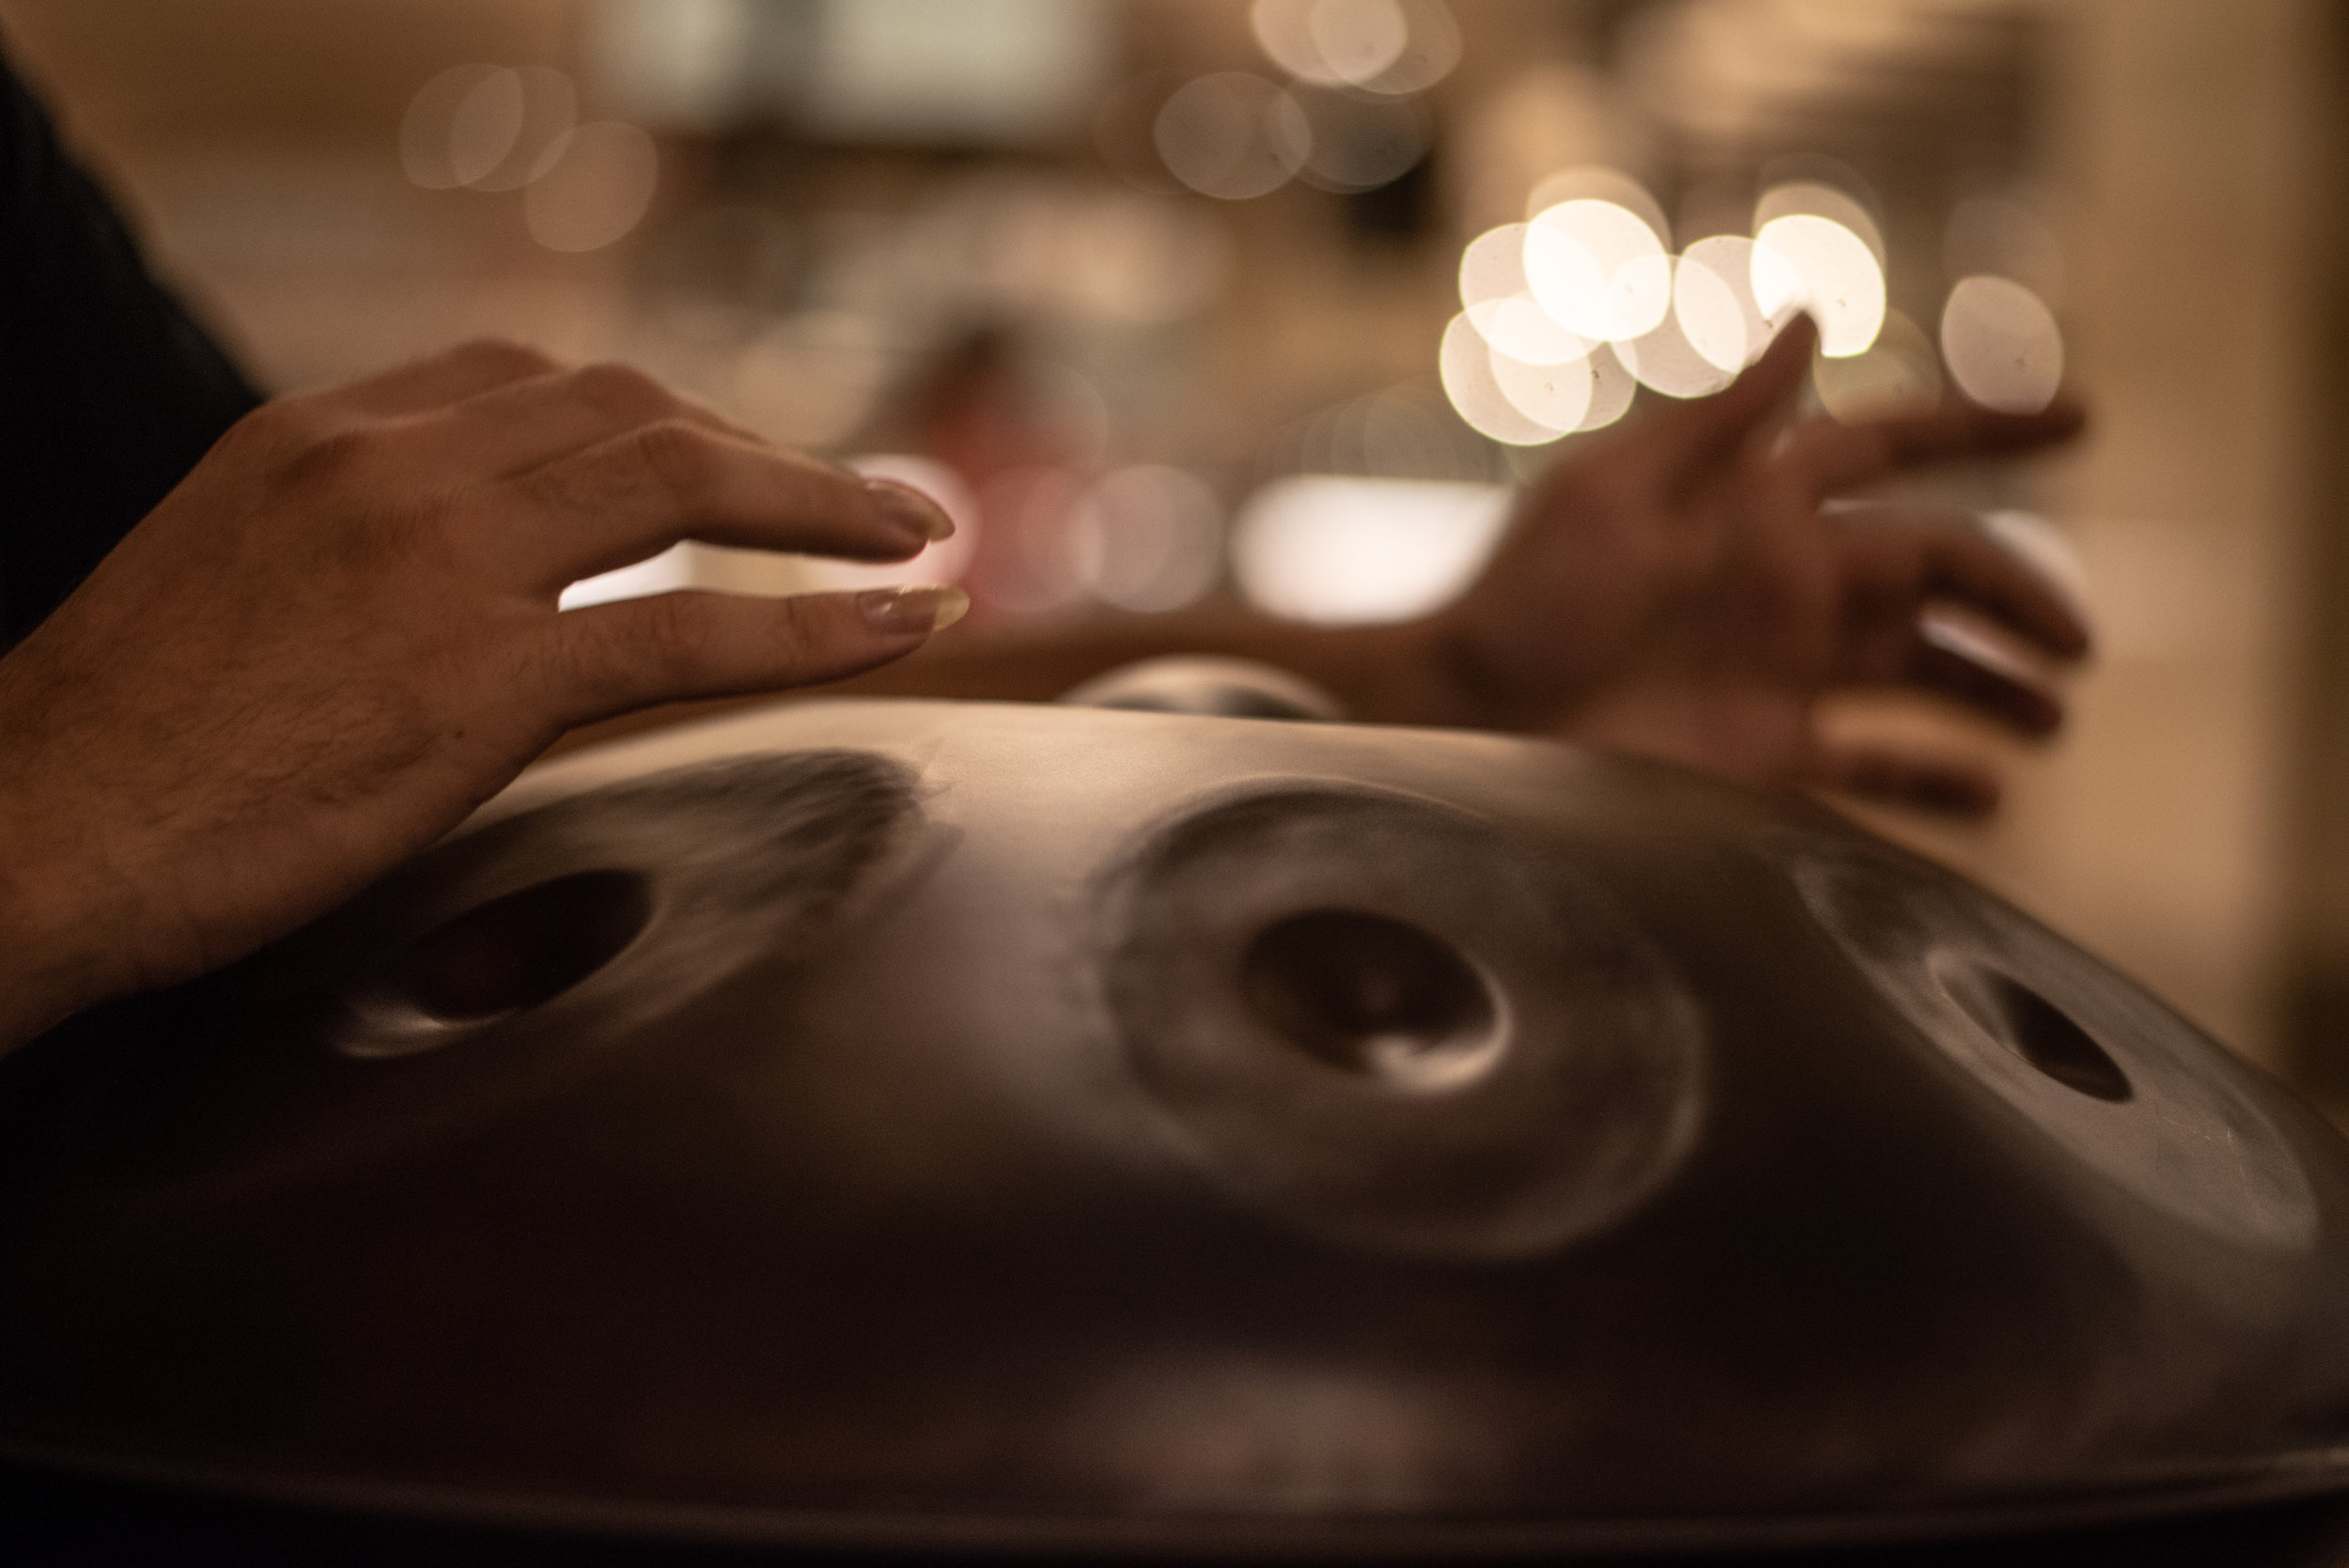 The Hang, a class of steel drum known as a hand pan, is played by gently striking the grooved areas with fingers. Each section is precisely tuned to produce a specific note.